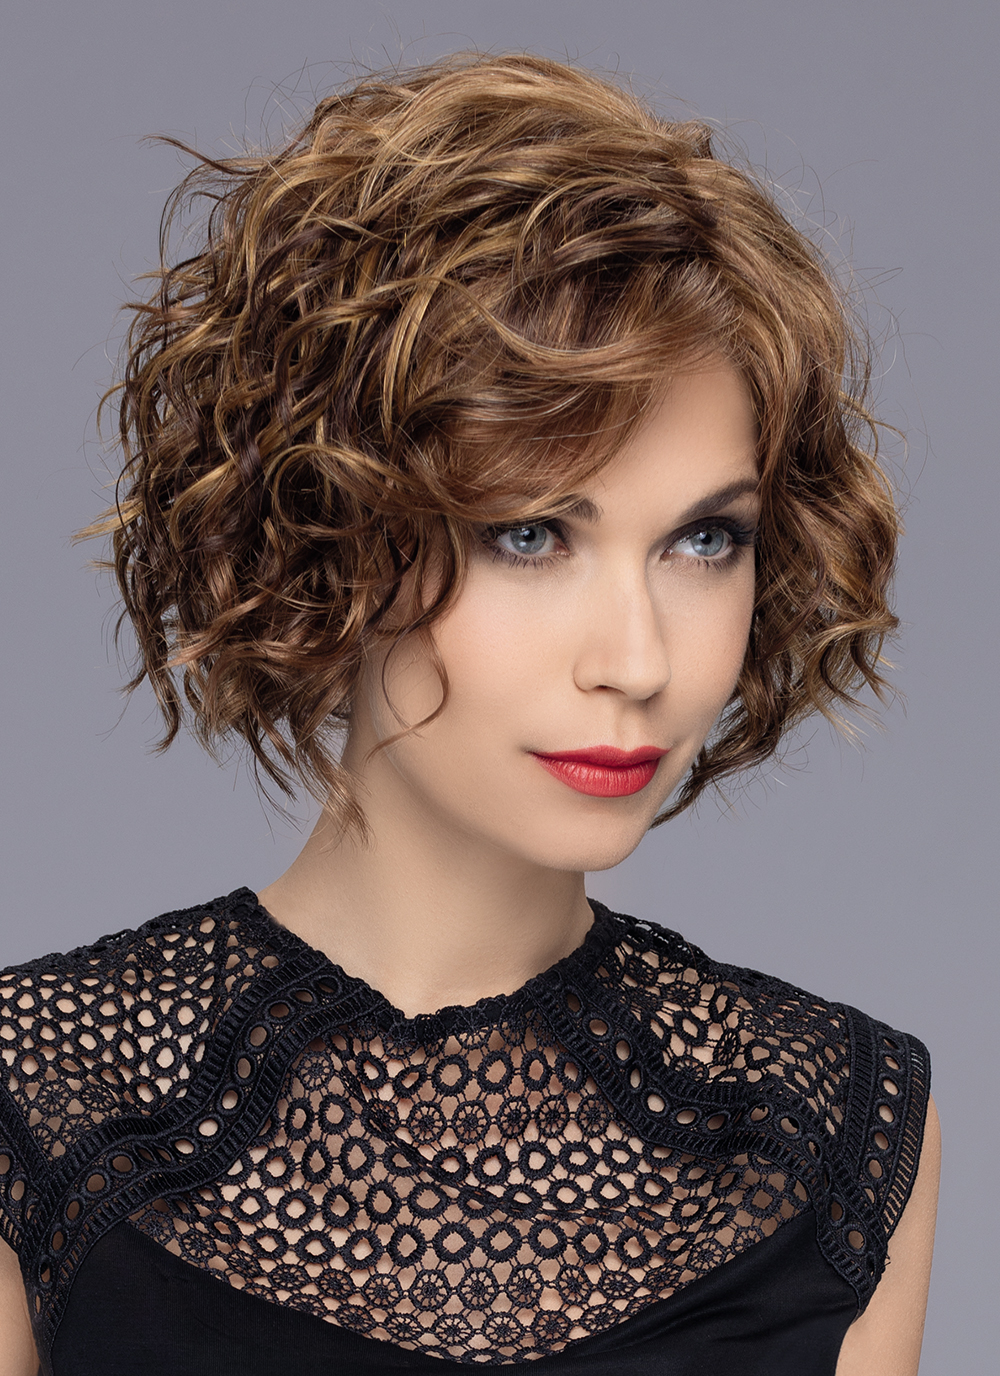 The Turn by Ellen Wille is fashionable very flattering mid-length bob with exciting curls & a perfect fringe.